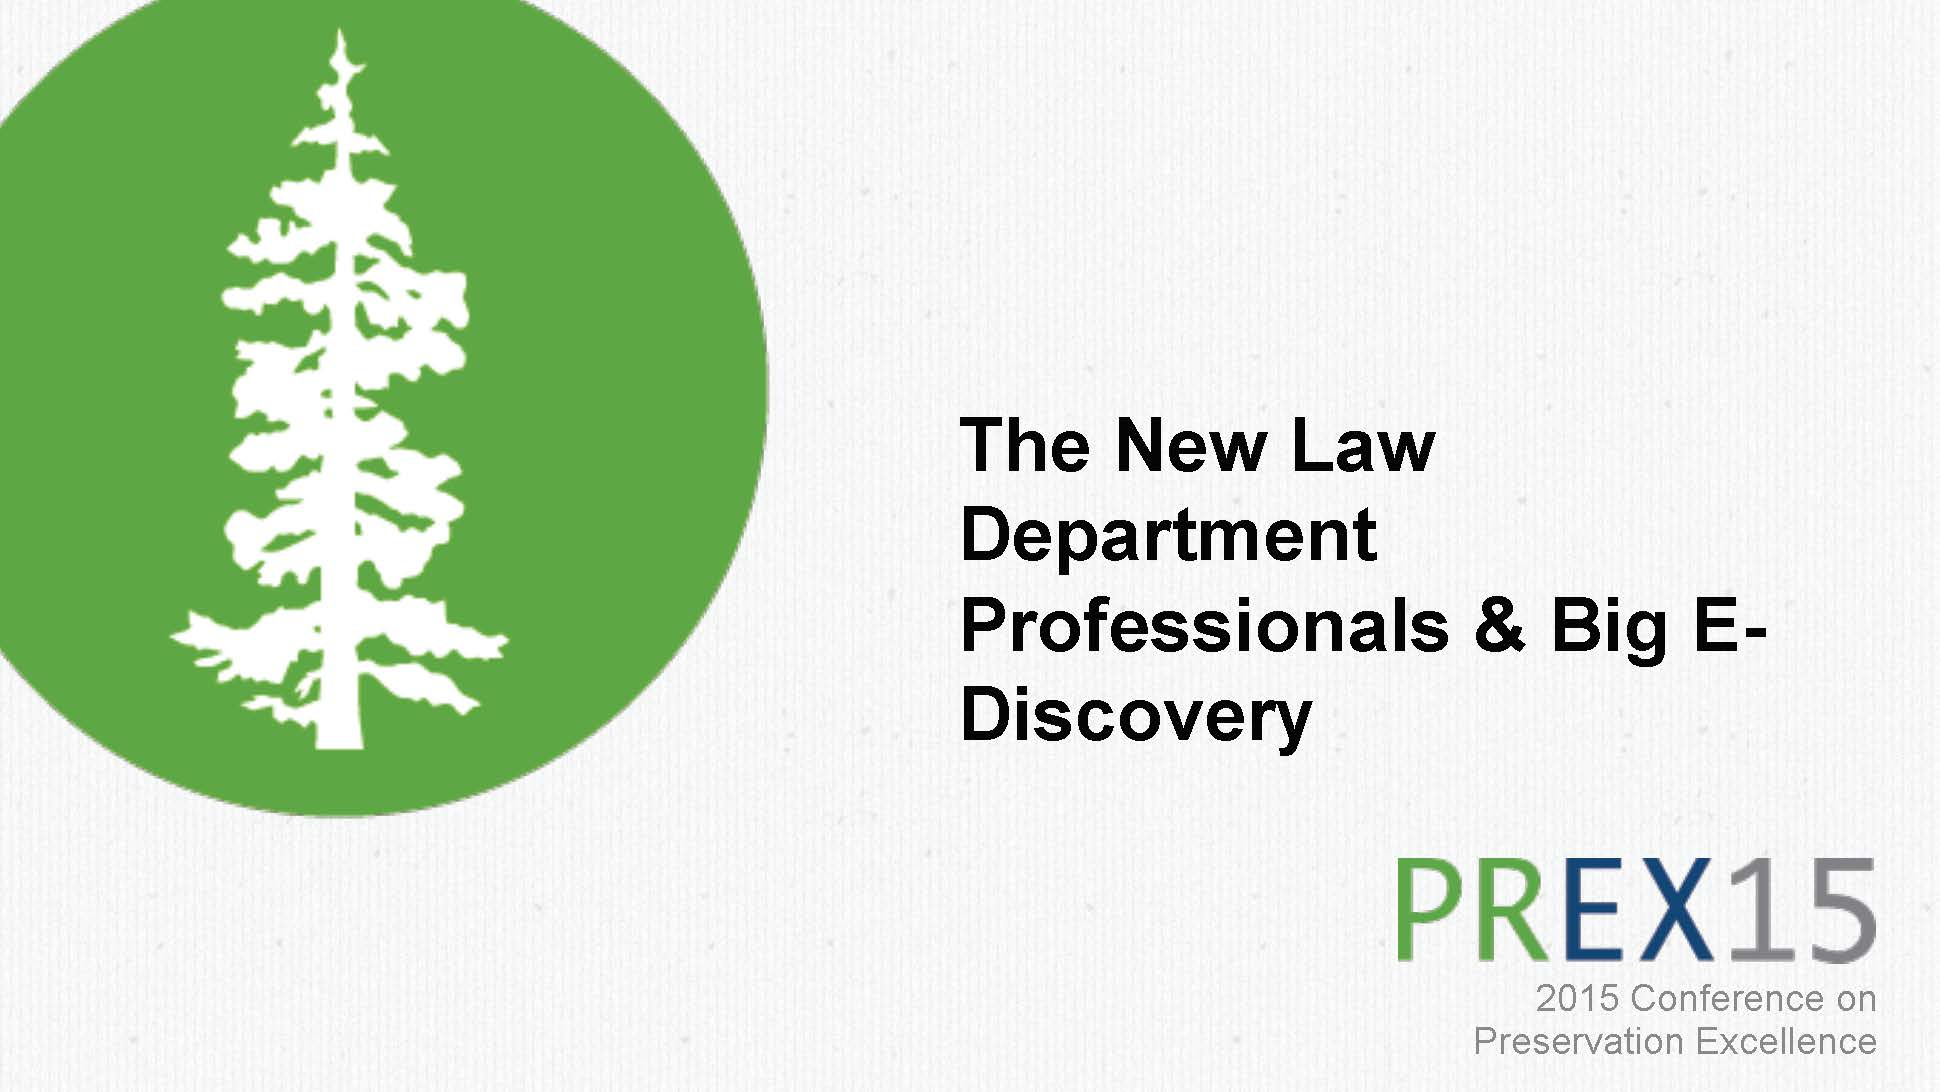 Session 3B: The New Law Department Professionals and Big E-Discovery